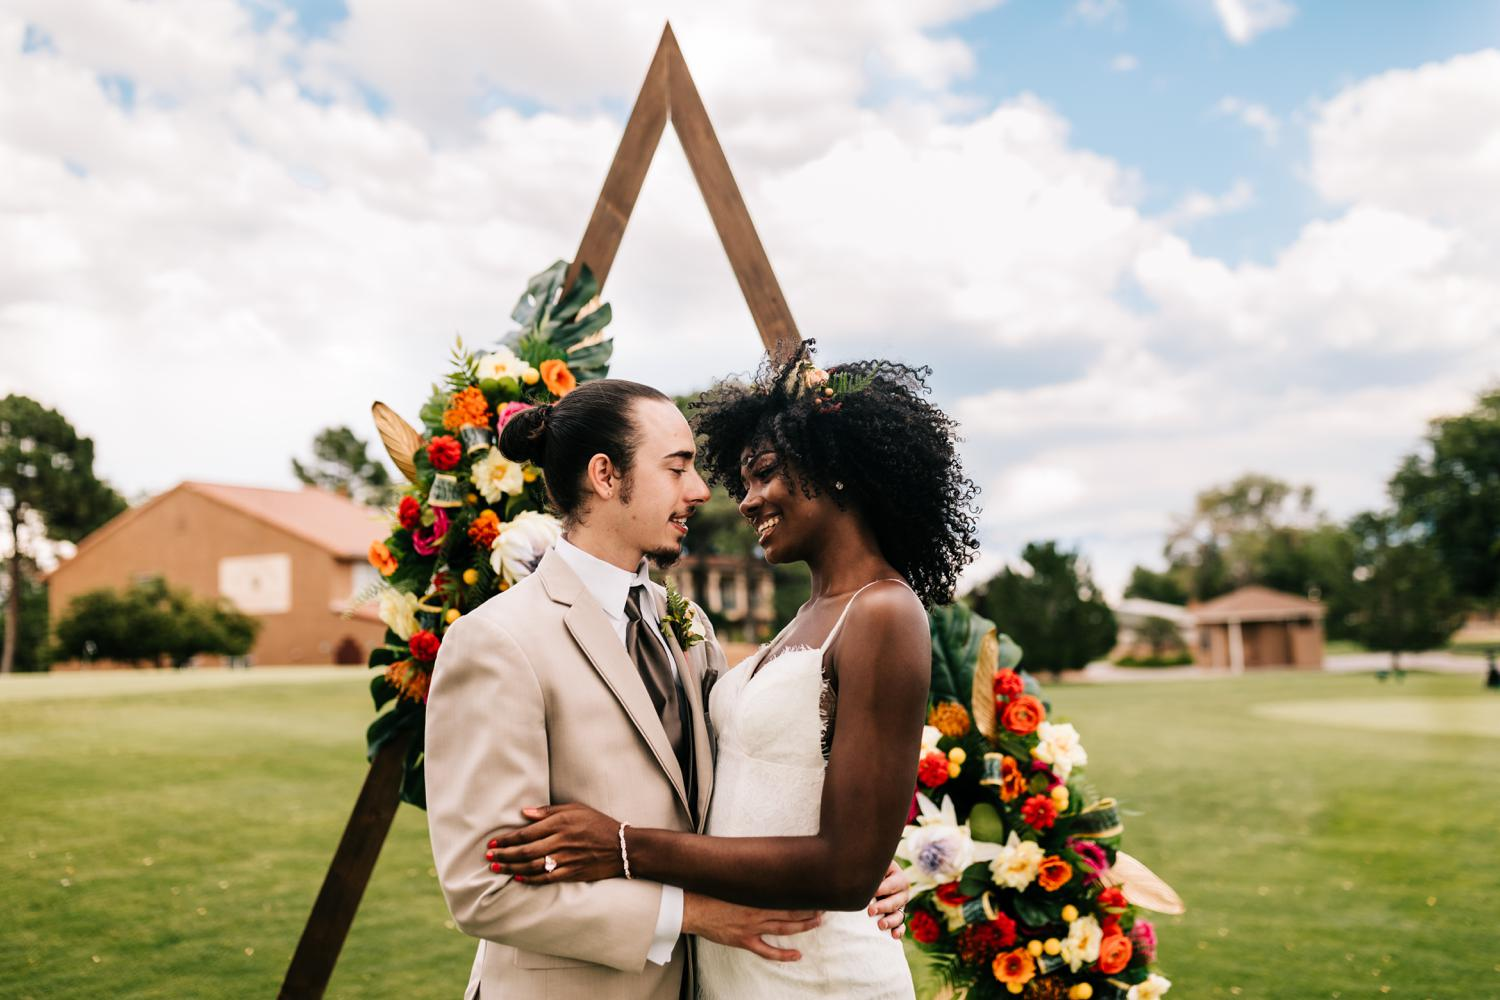 Bride and groom with arch for wedding ceremony in Albuquerque, New Mexico